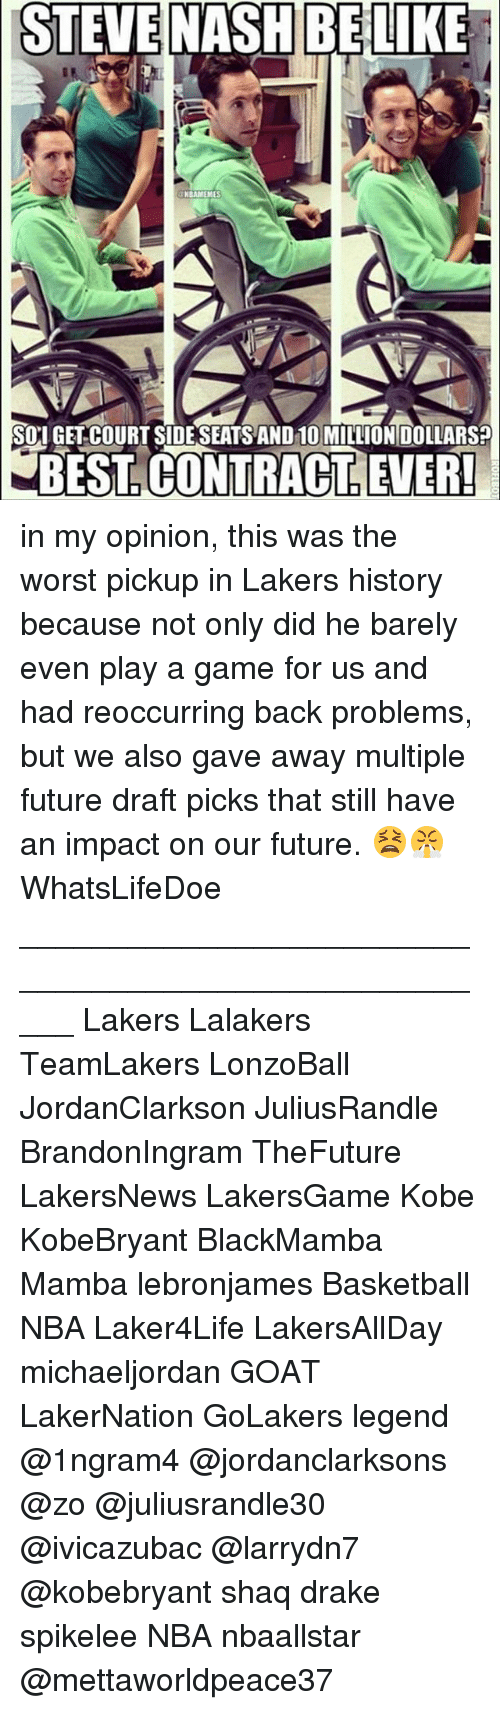 Basketball, Drake, and Future: STEVE  NASH BELIKE  NBAMEMES  SOI GET COURT SIDESEATS AND 10 MILLION DOLLARS?  BEST. CONTRACT, LEVER in my opinion, this was the worst pickup in Lakers history because not only did he barely even play a game for us and had reoccurring back problems, but we also gave away multiple future draft picks that still have an impact on our future. 😫😤 WhatsLifeDoe _____________________________________________________ Lakers Lalakers TeamLakers LonzoBall JordanClarkson JuliusRandle BrandonIngram TheFuture LakersNews LakersGame Kobe KobeBryant BlackMamba Mamba lebronjames Basketball NBA Laker4Life LakersAllDay michaeljordan GOAT LakerNation GoLakers legend @1ngram4 @jordanclarksons @zo @juliusrandle30 @ivicazubac @larrydn7 @kobebryant shaq drake spikelee NBA nbaallstar @mettaworldpeace37